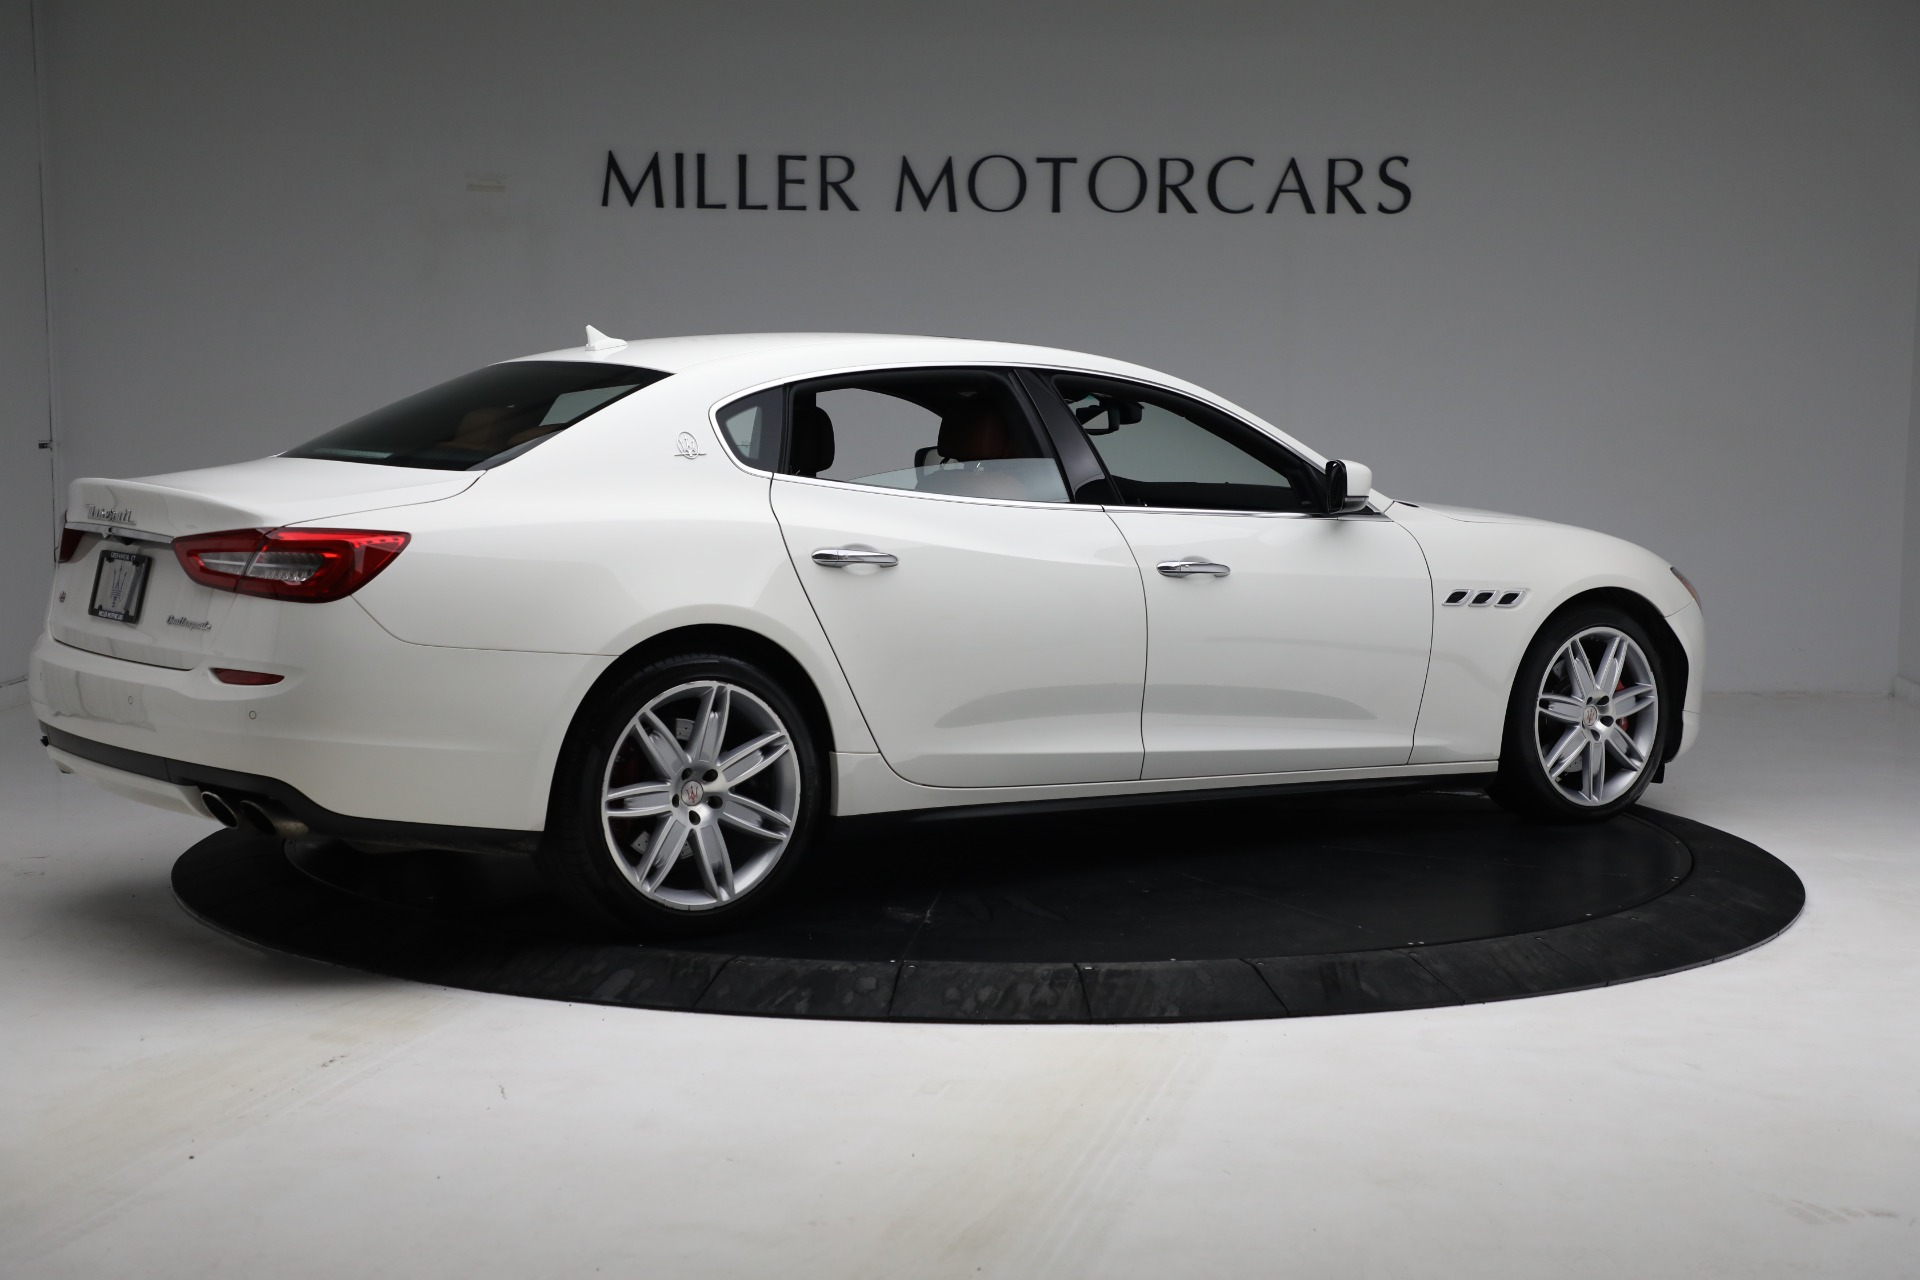 Used 2015 Maserati Quattroporte S Q4 For Sale In Greenwich, CT. Alfa Romeo of Greenwich, 7469 2915_p8